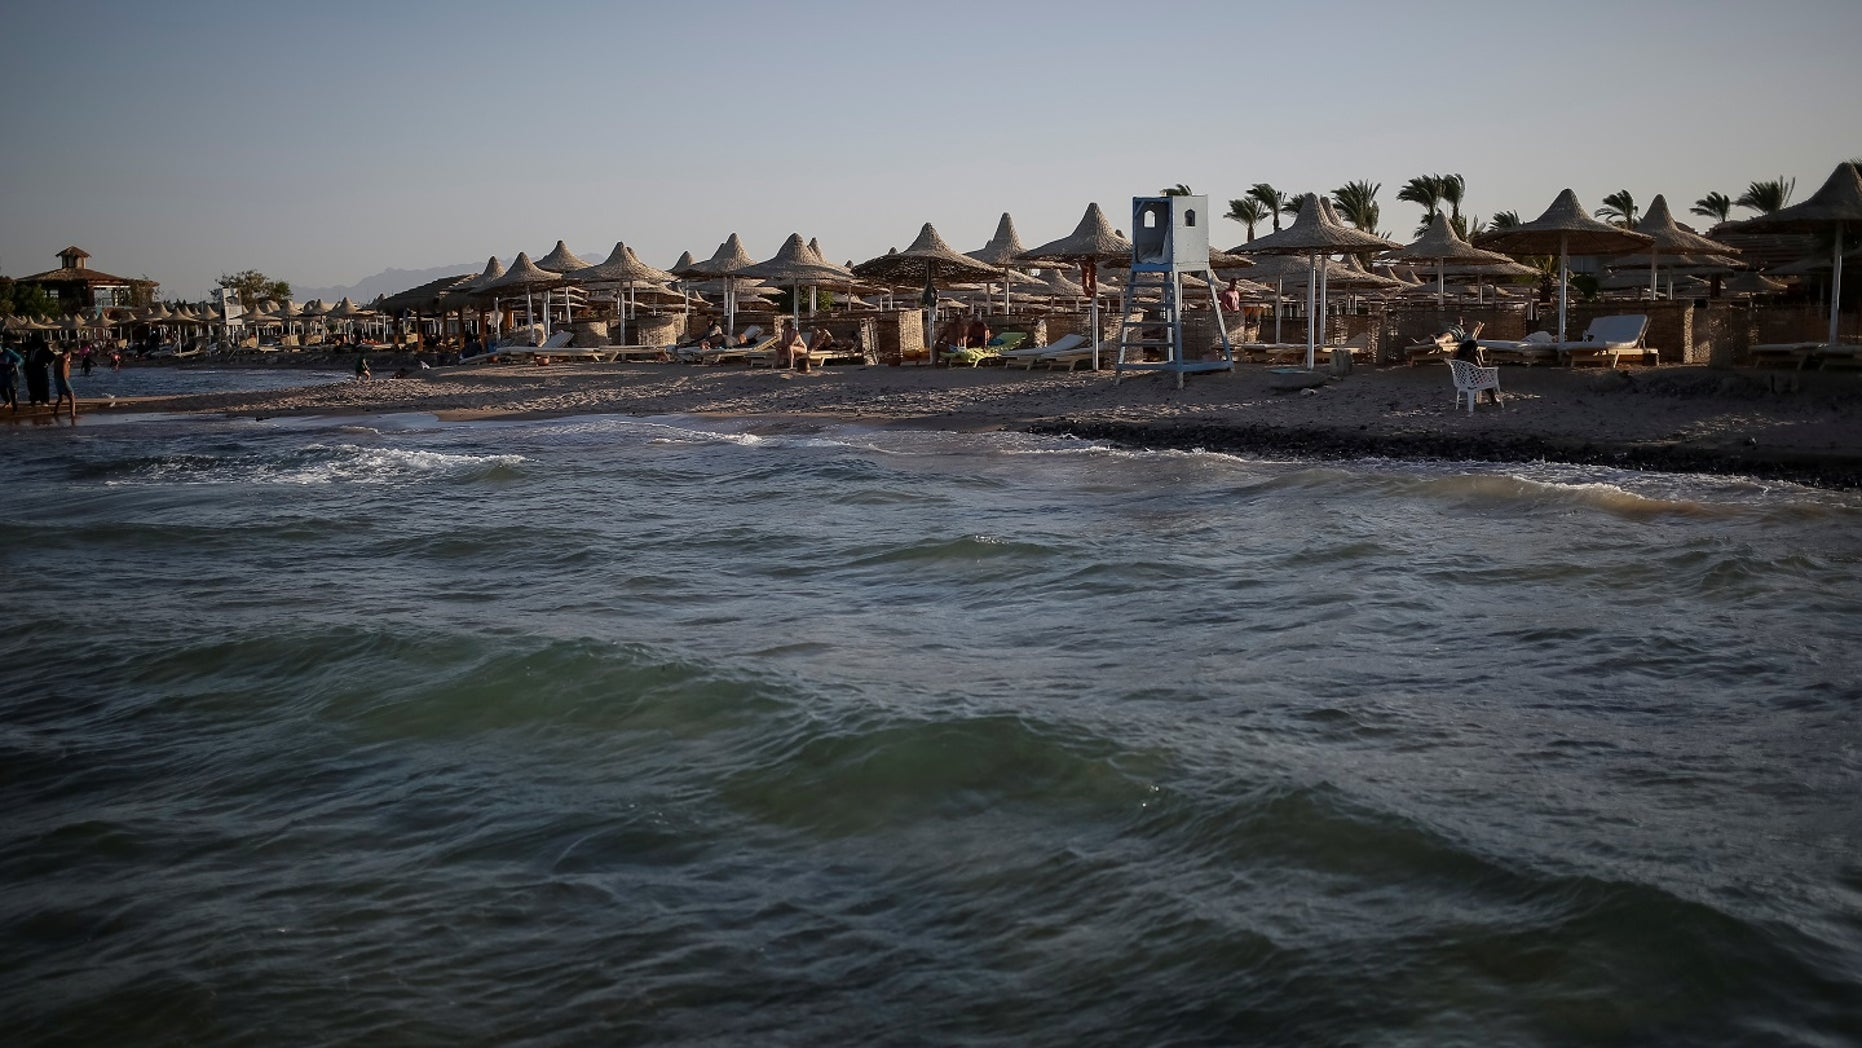 A knife-wielding man went on a stabbing spree and killed two German tourists and injured four others on Friday in the Red Sea resort of Hurghada.